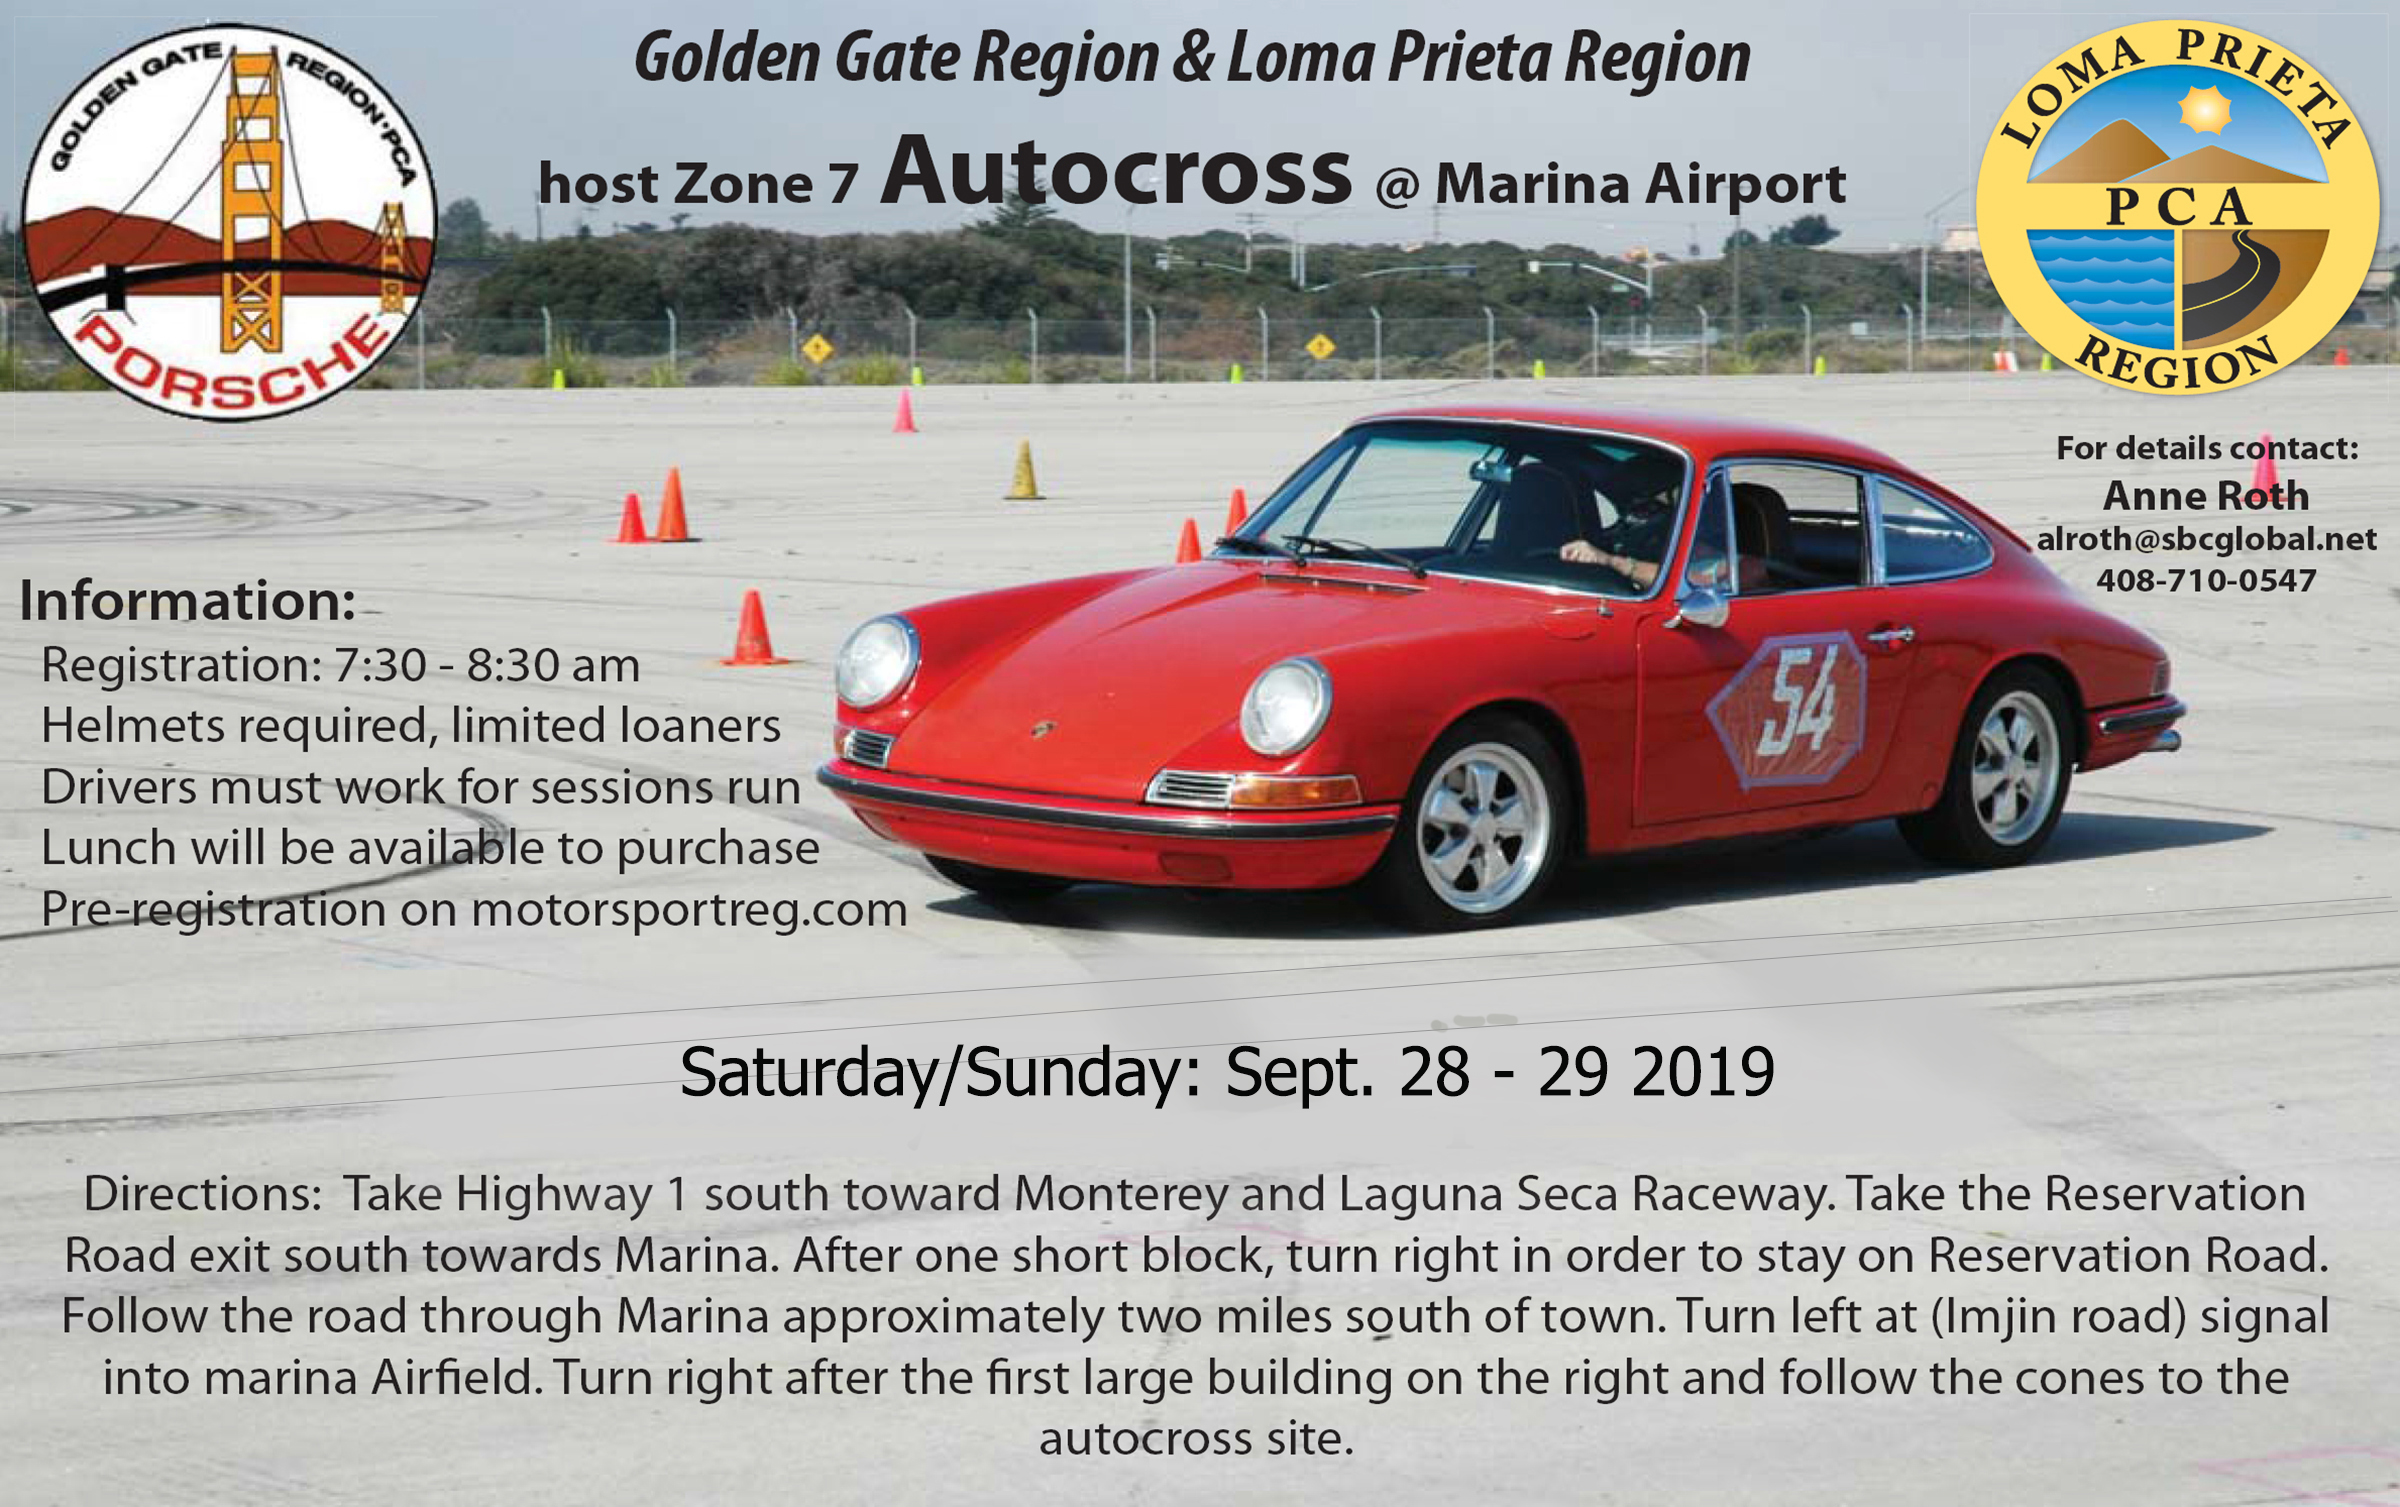 Zone 7 / GGR/LPR Hosted Autocross